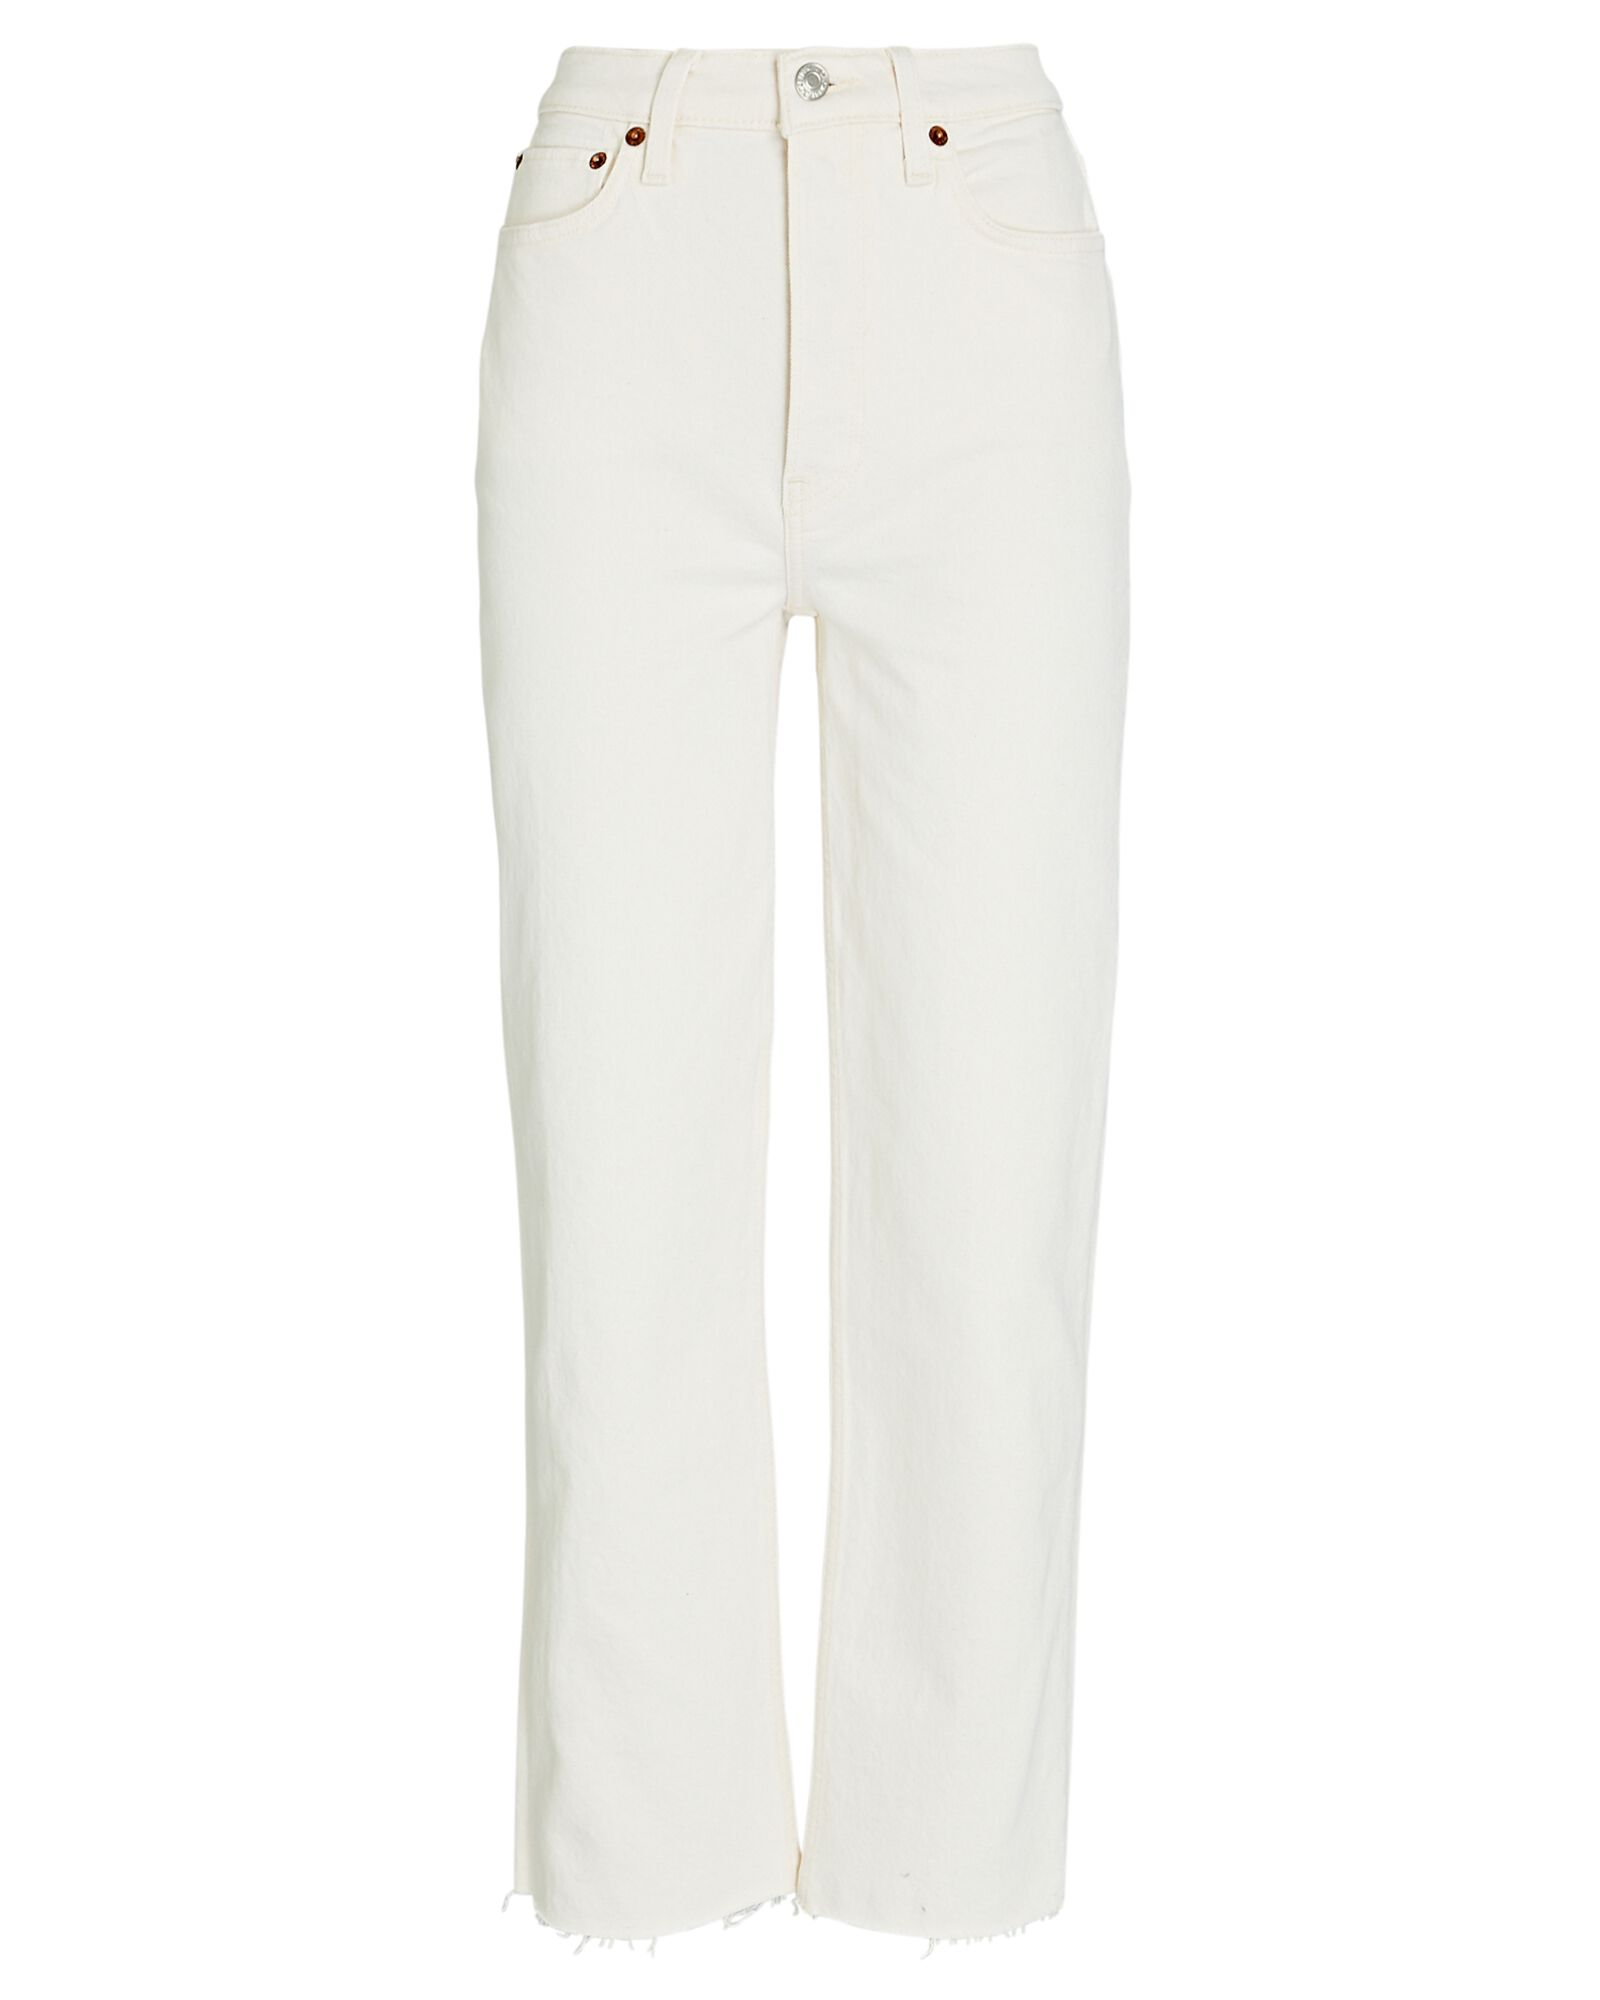 70s High-Rise Stove Pipe Jeans, IVORY, hi-res